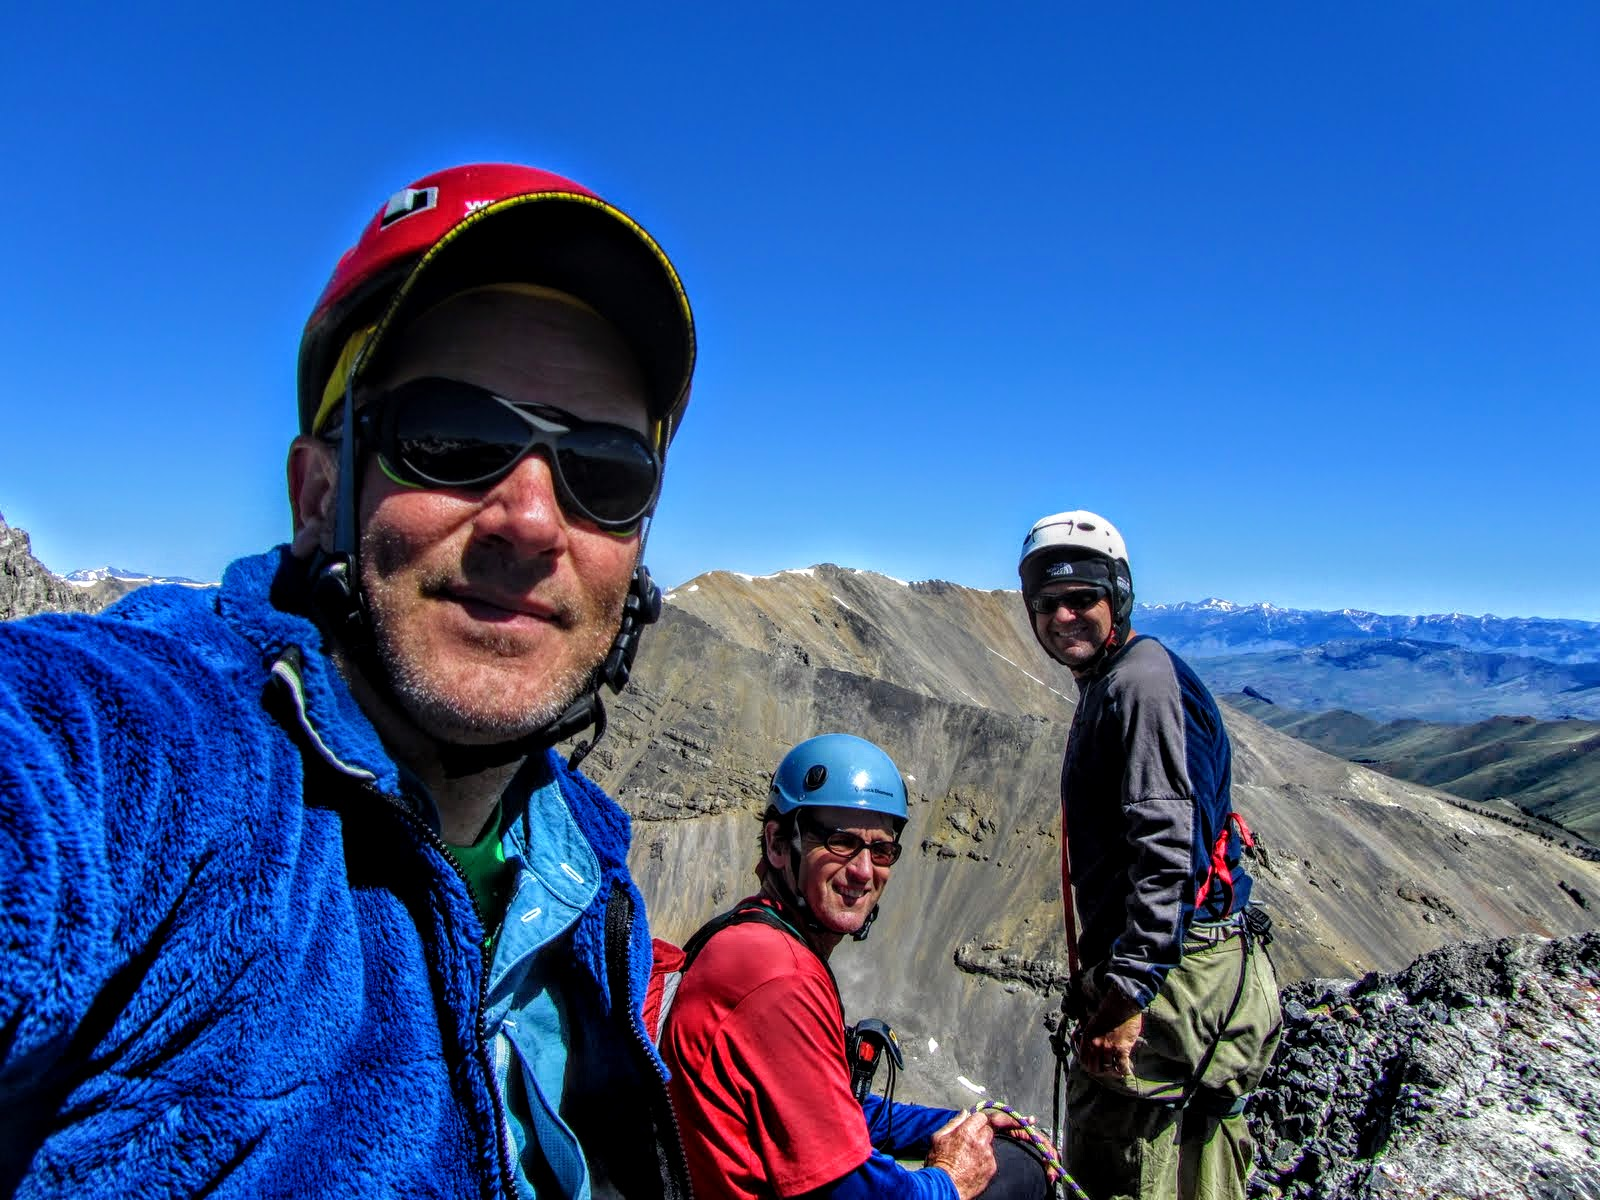 The first ascent team on the Summit, George Reinier, Johnny Roache and Pat McGrane. George Reinier Photo